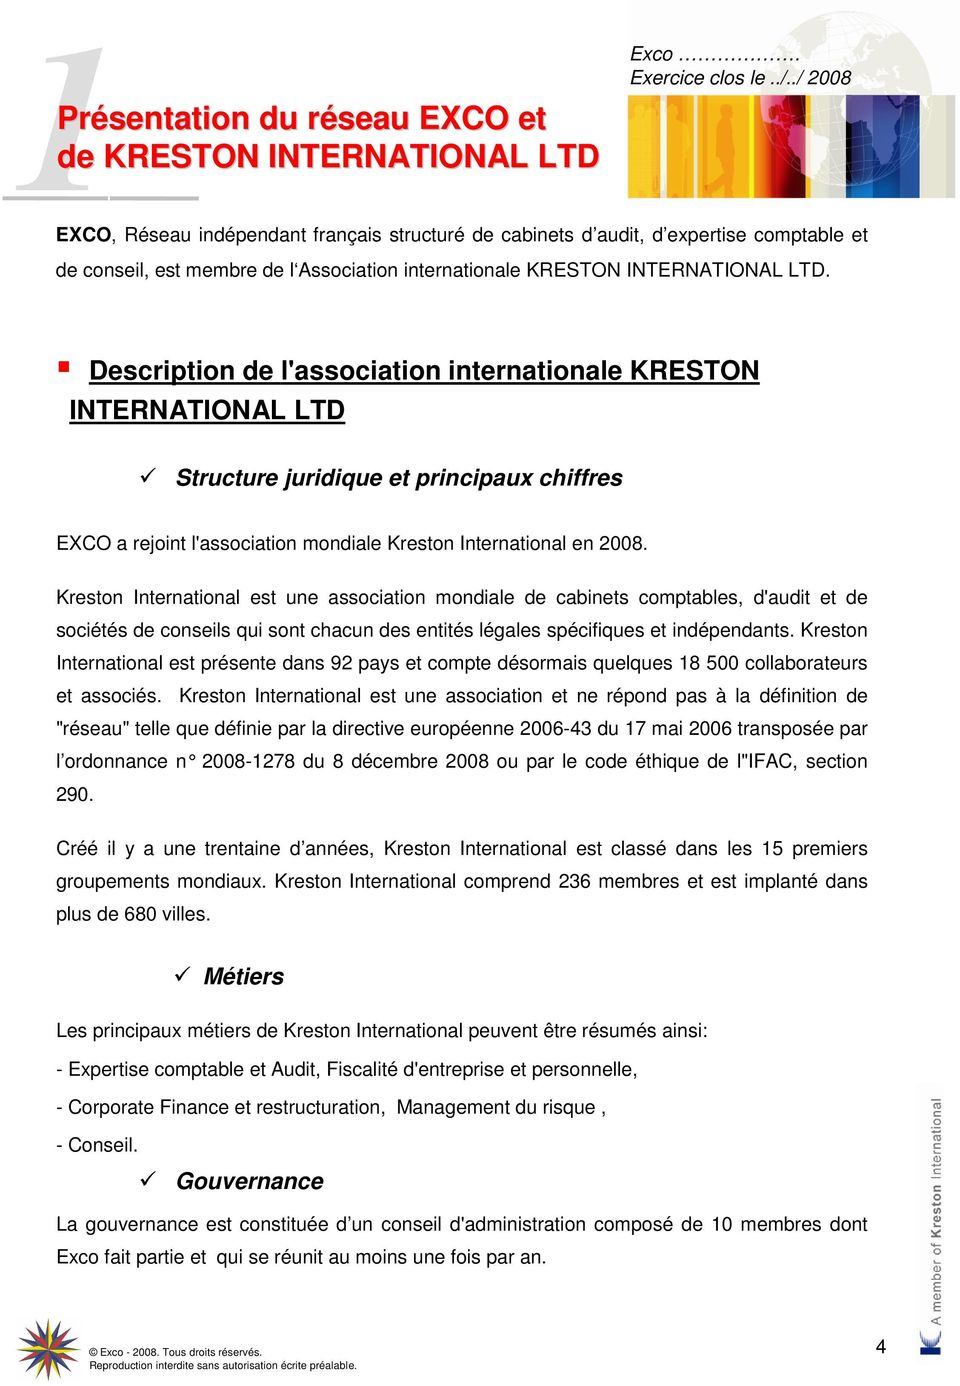 Description de l'association internationale KRESTON INTERNATIONAL LTD Structure juridique et principaux chiffres EXCO a rejoint l'association mondiale Kreston International en 2008.